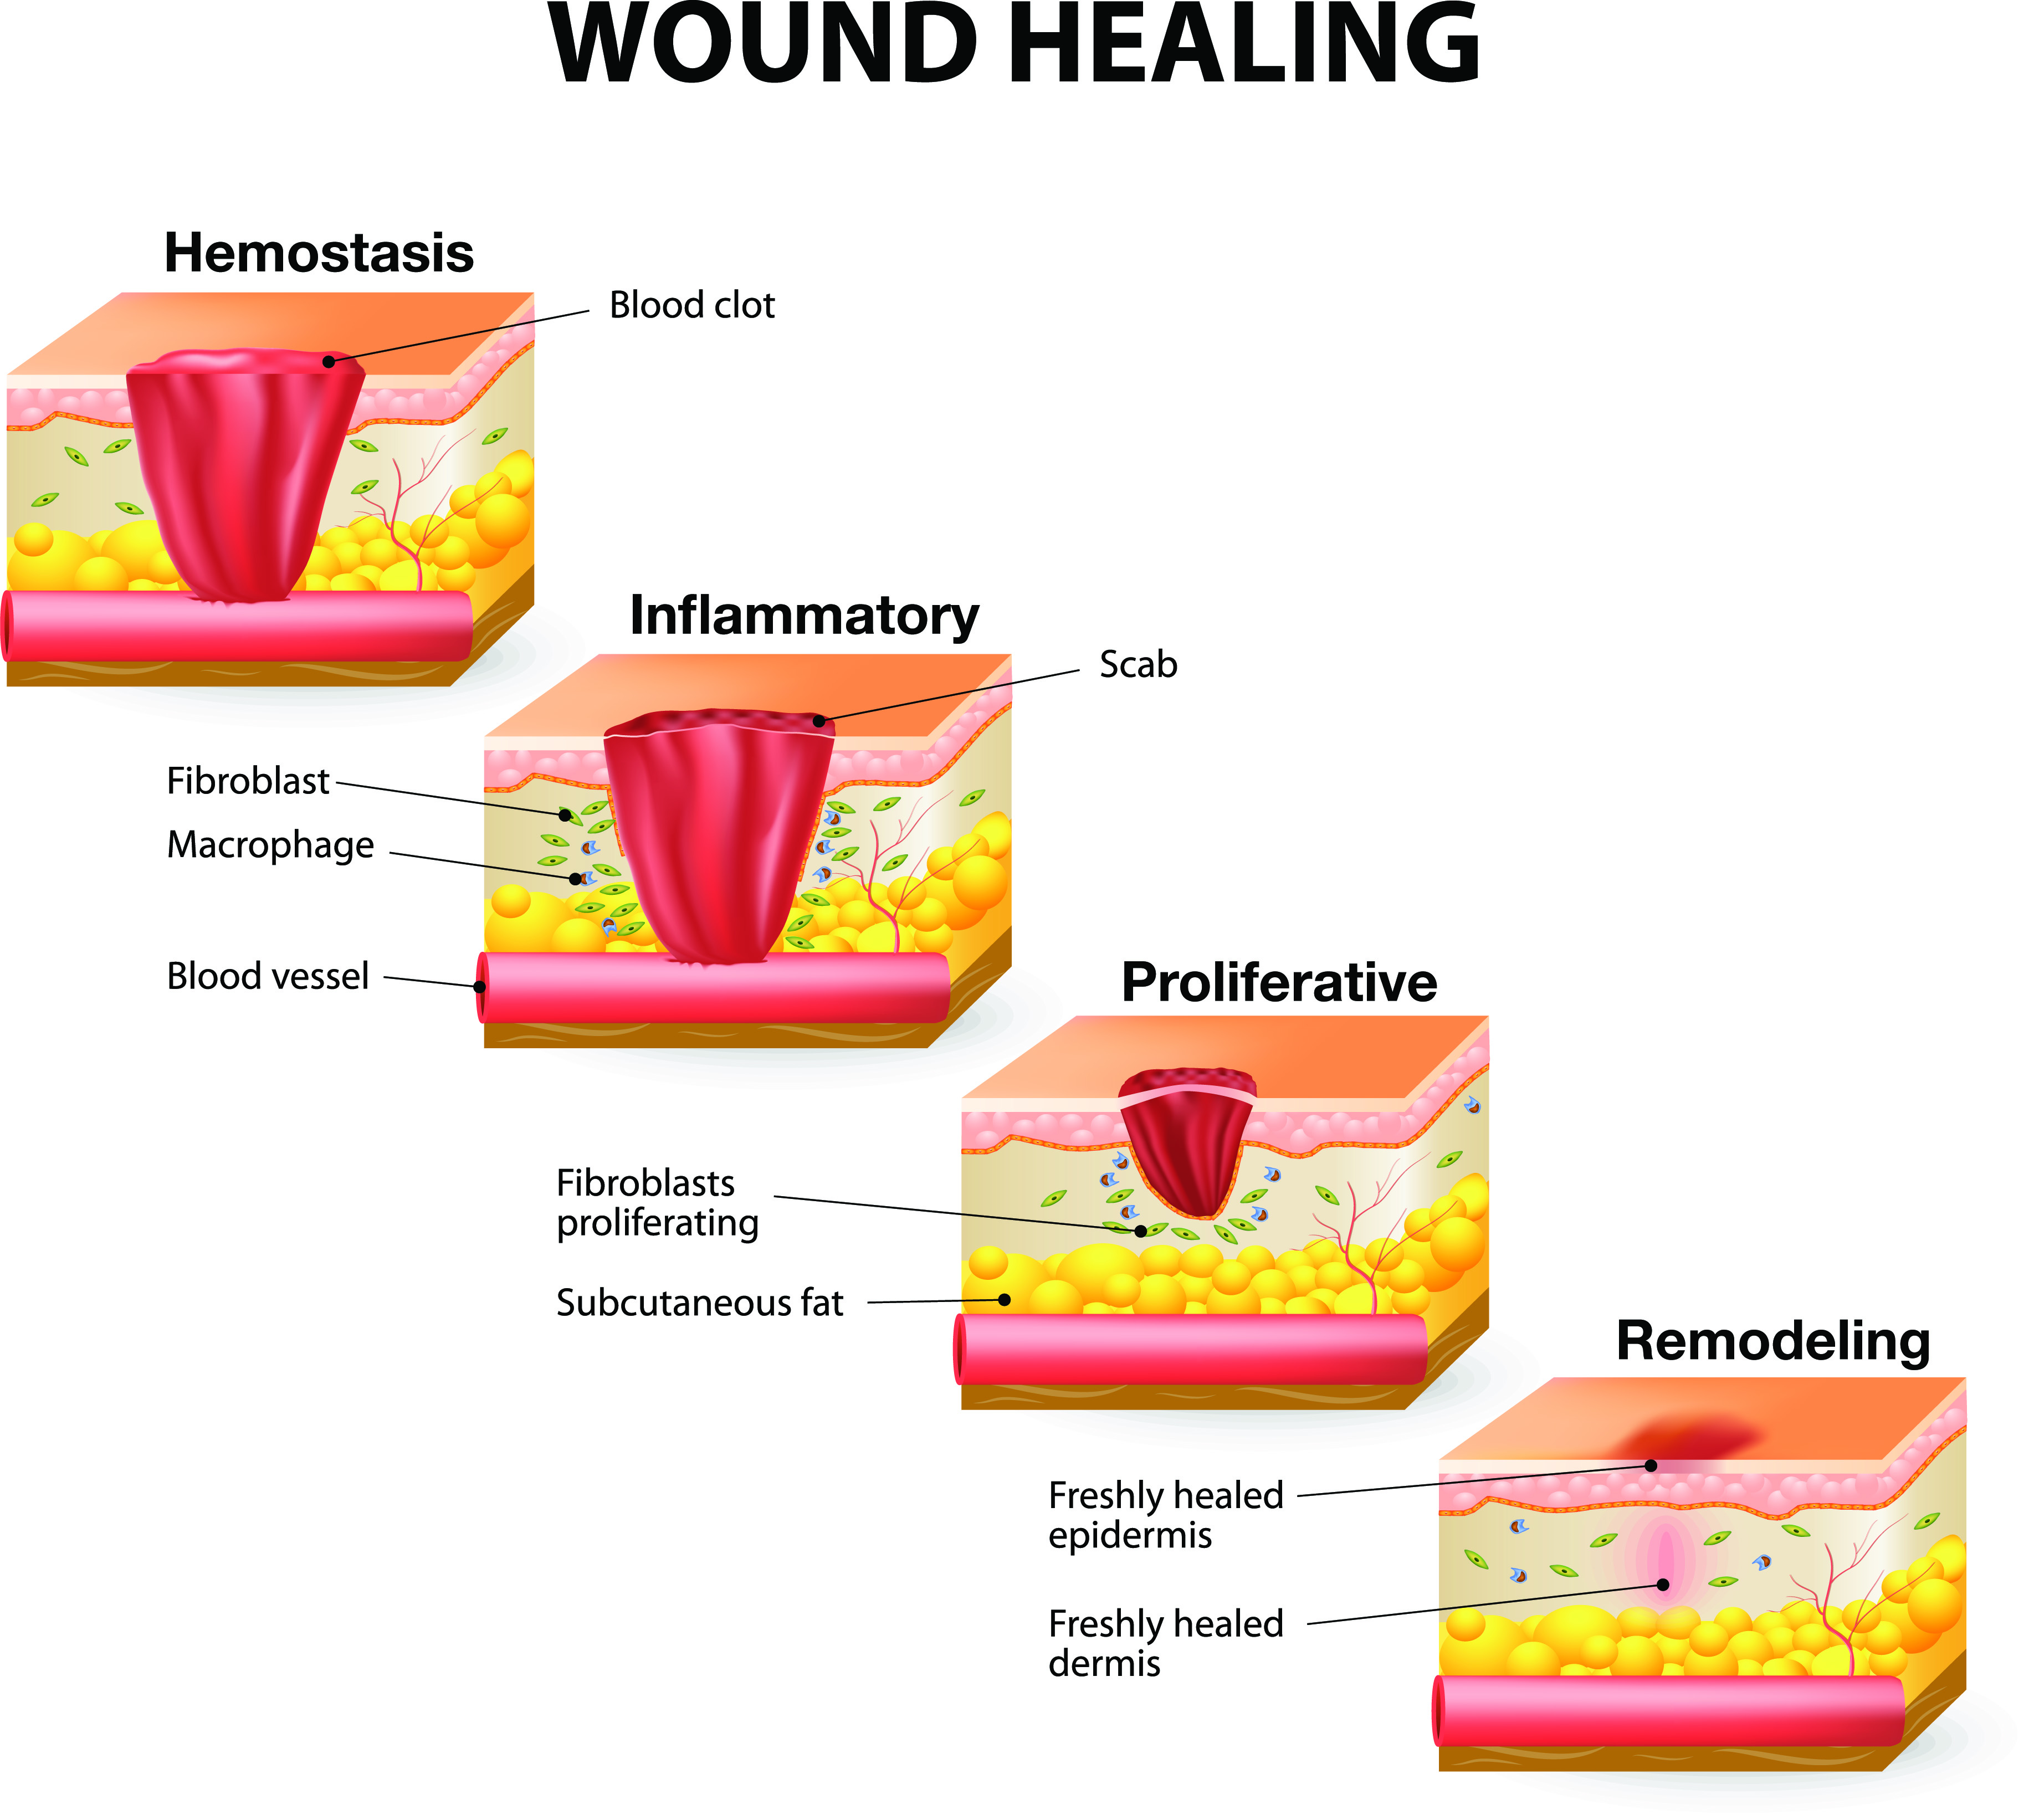 (http://www.shieldhealthcare.com/community/wp-content/uploads/2015/07/Stages-of-Healing_image.jpg)